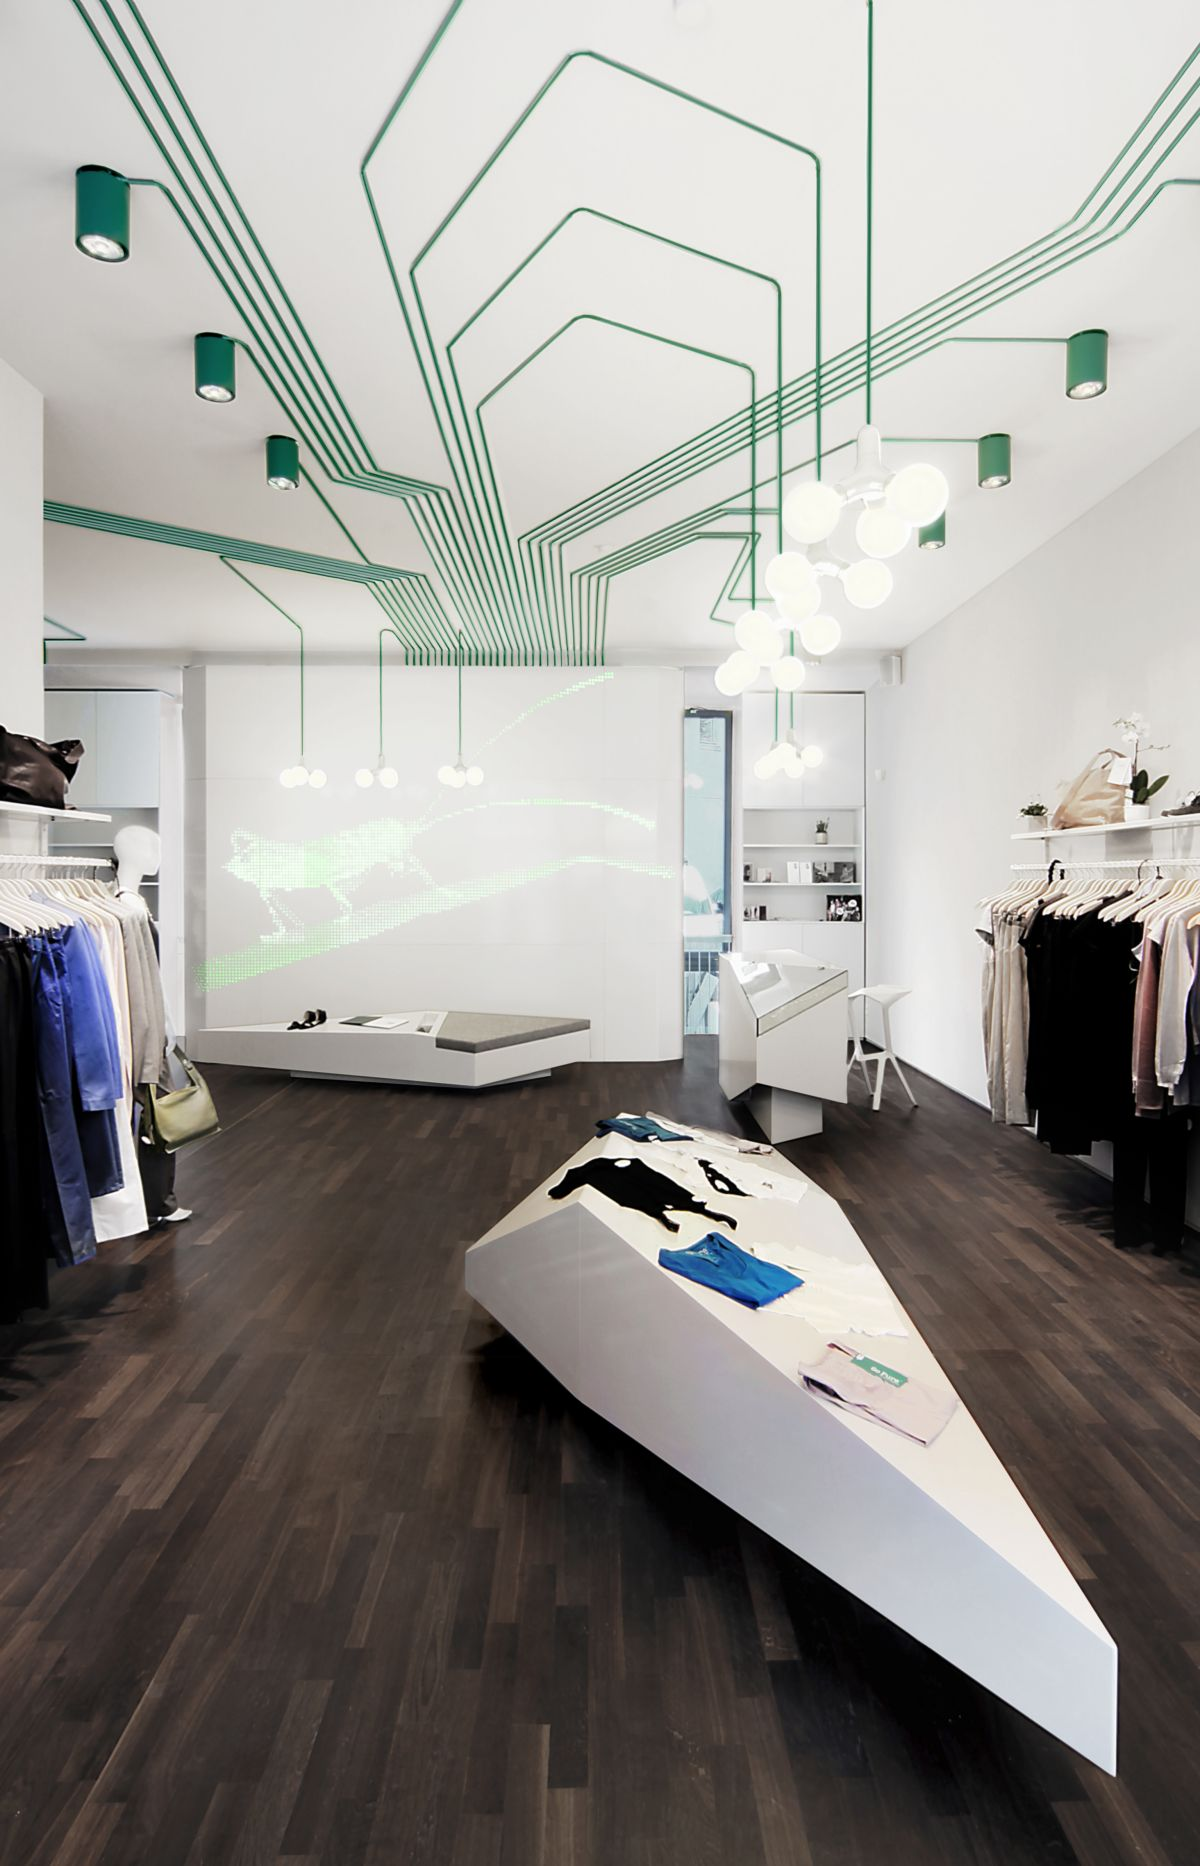 The maygreen shop interior by kinzo karmatrendz for Design outlet hamburg